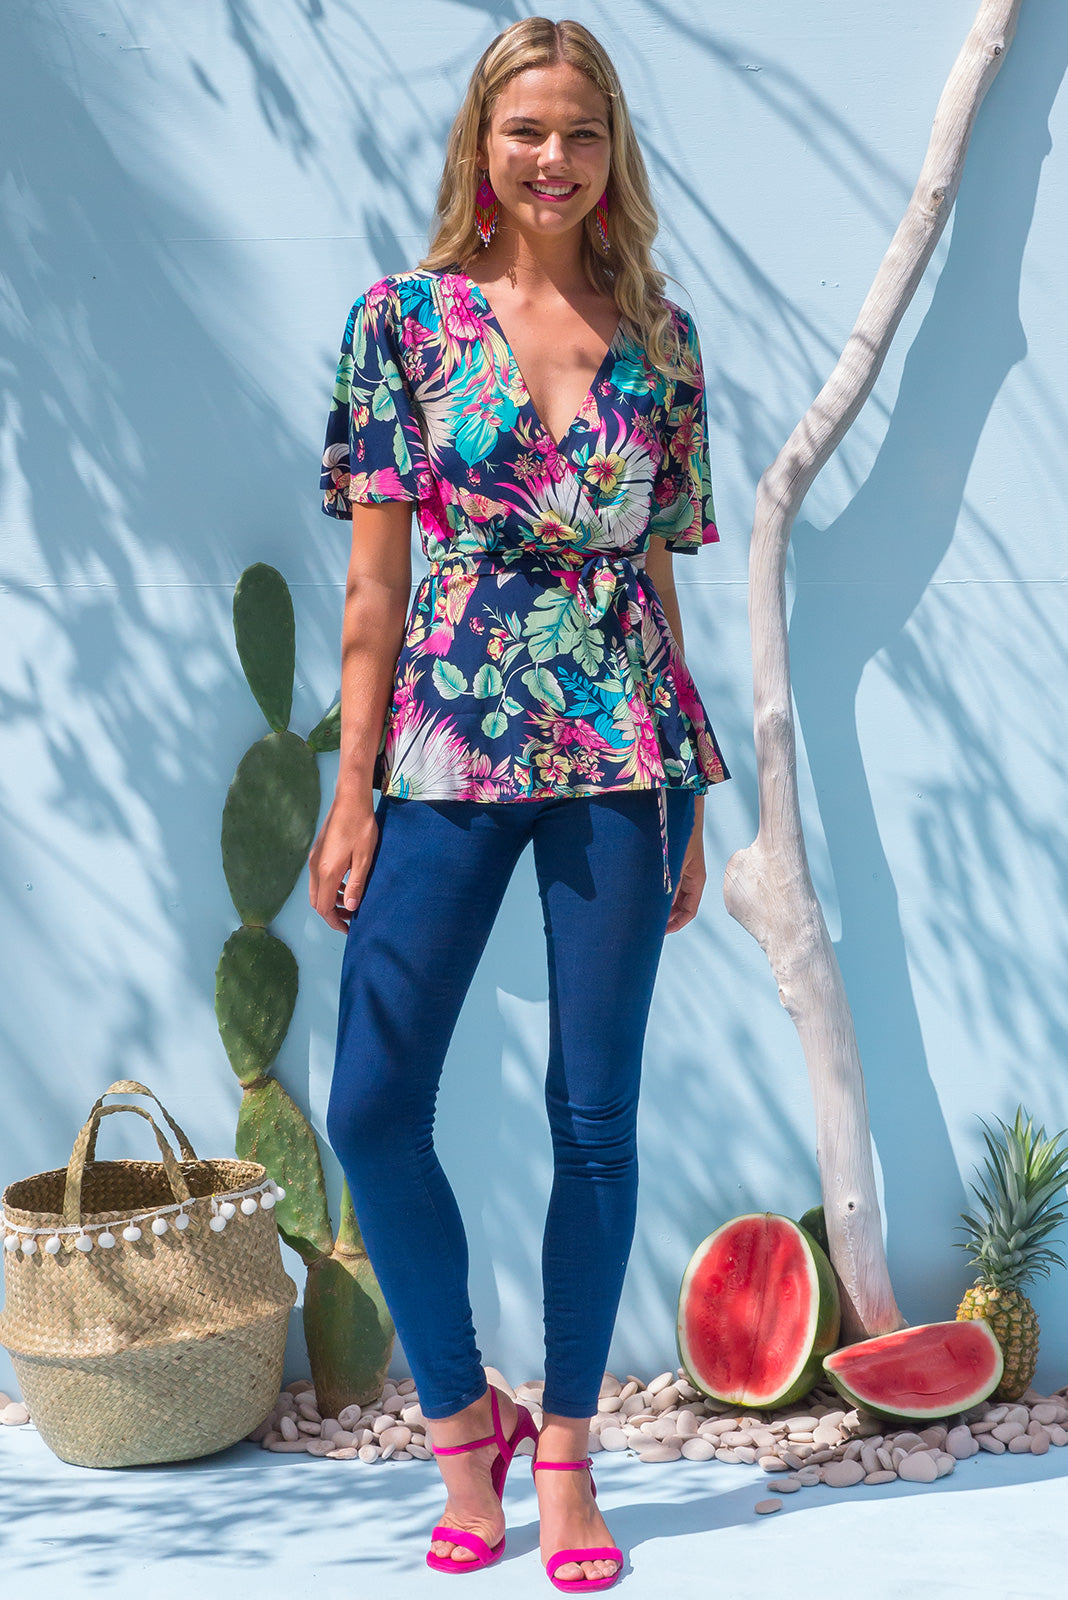 Della Bird of Paradise Wrap Top in a bright navy with a tropical floral and bird print on soft woven rayon the top has petal sleeve and wrap around waist